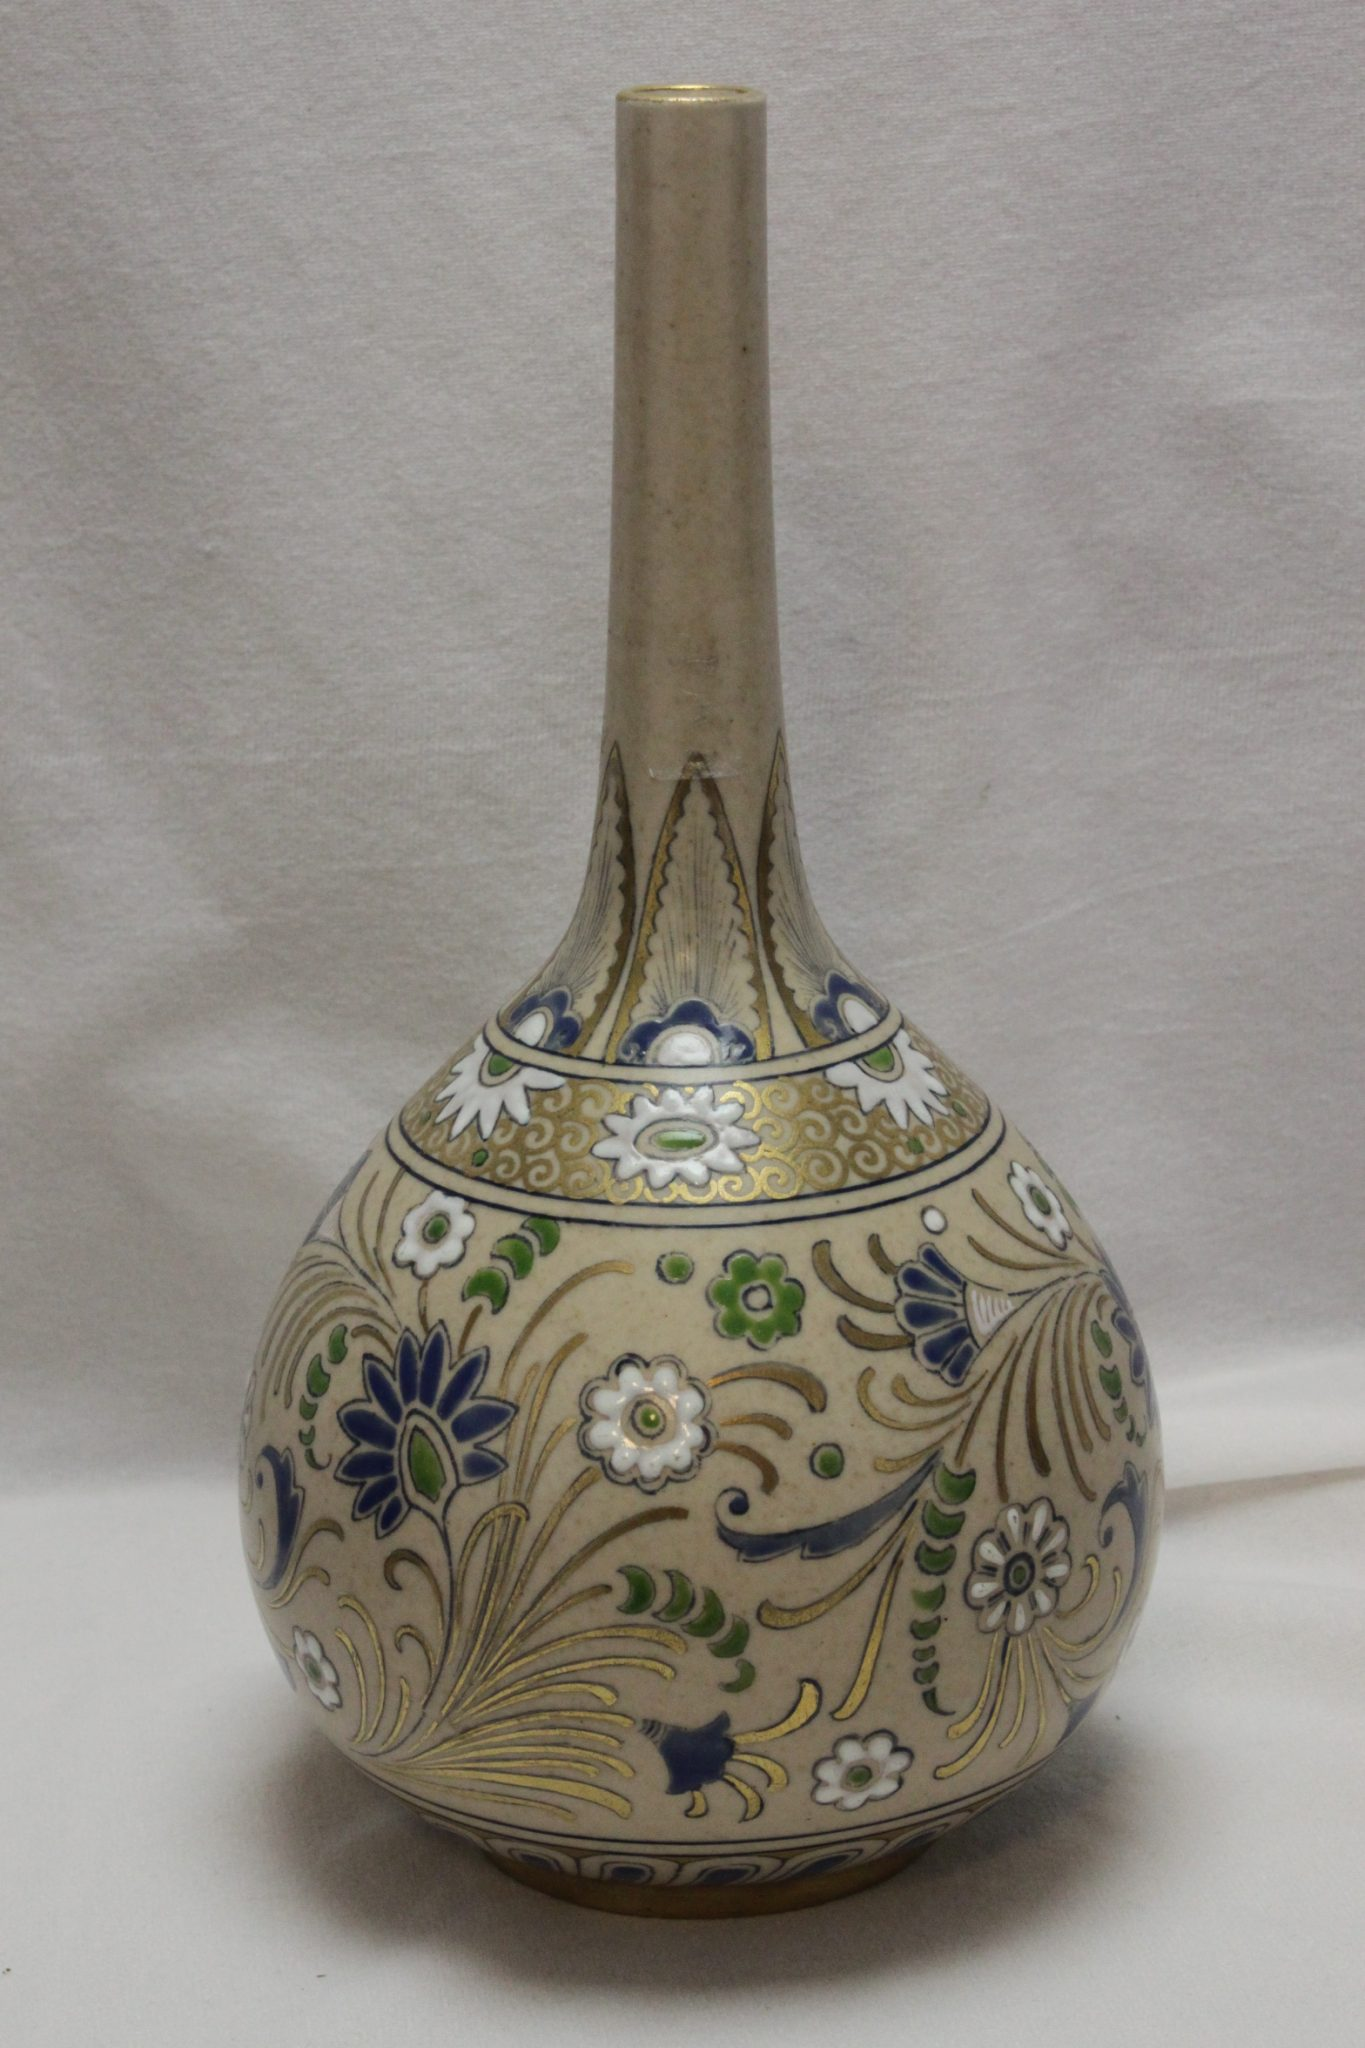 Doulton Lambeth Carrara Ware vase by Mildred Smallfield